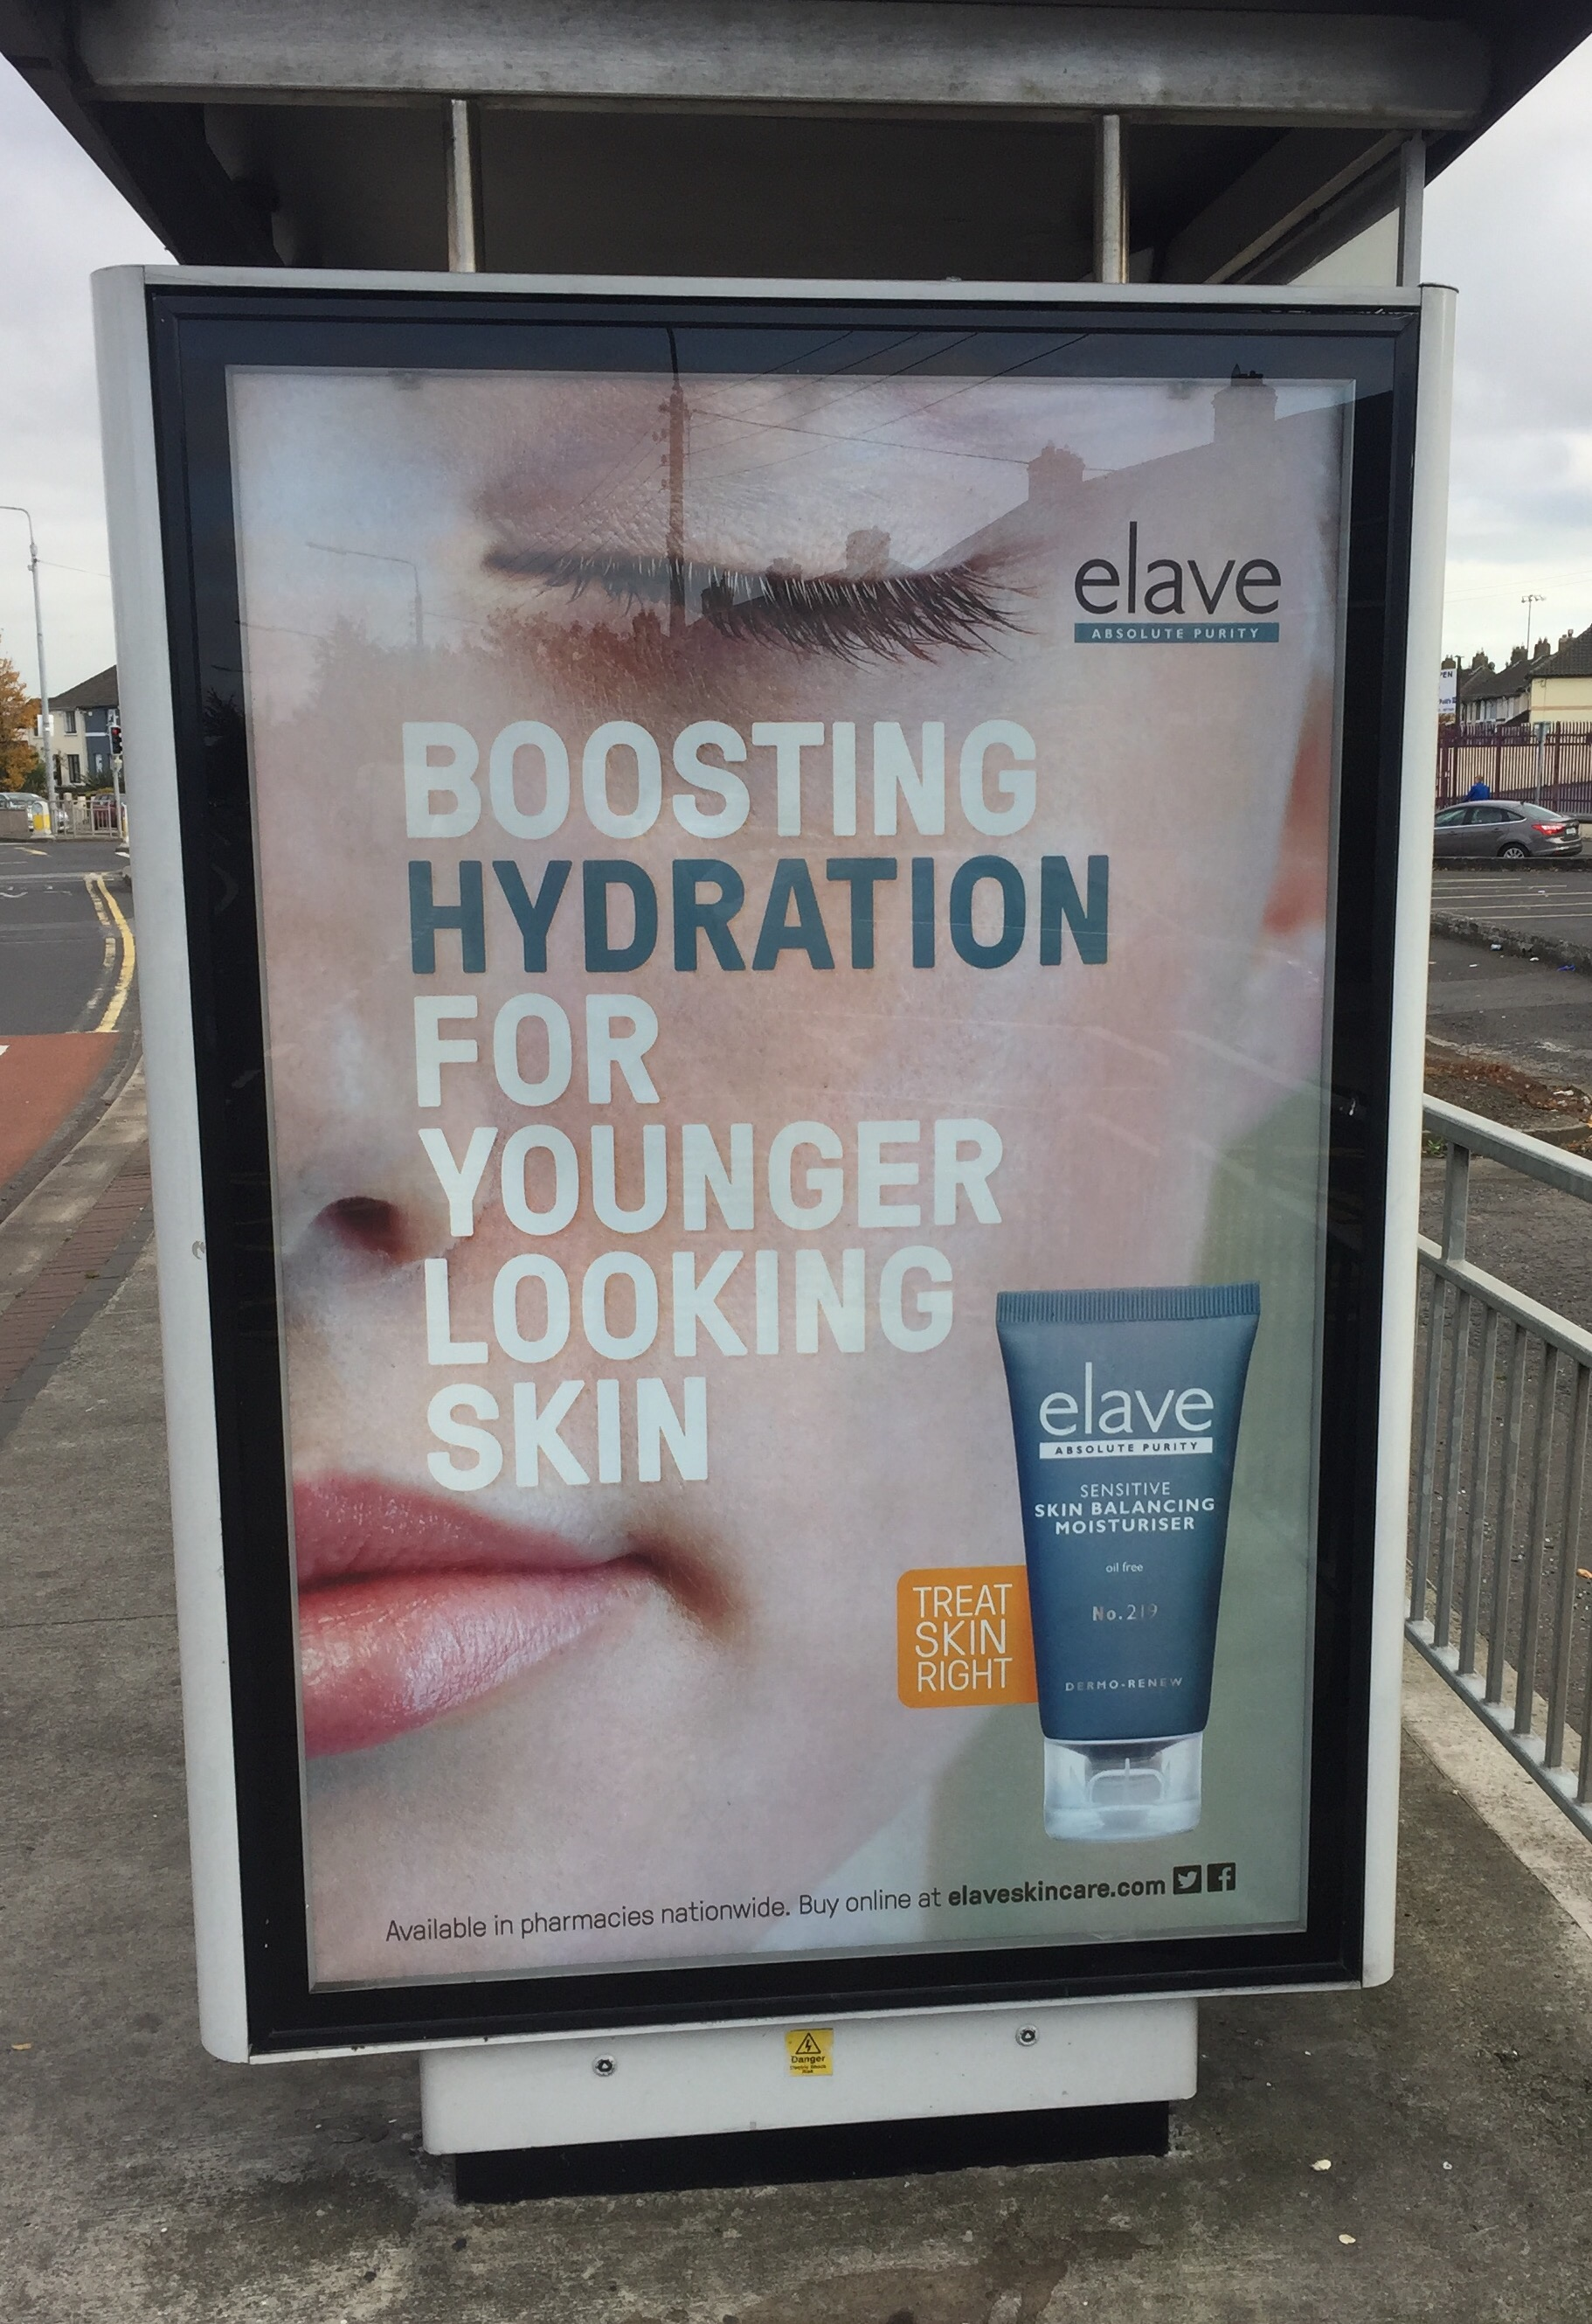 Elave – Boosting hydration for younger looking skin